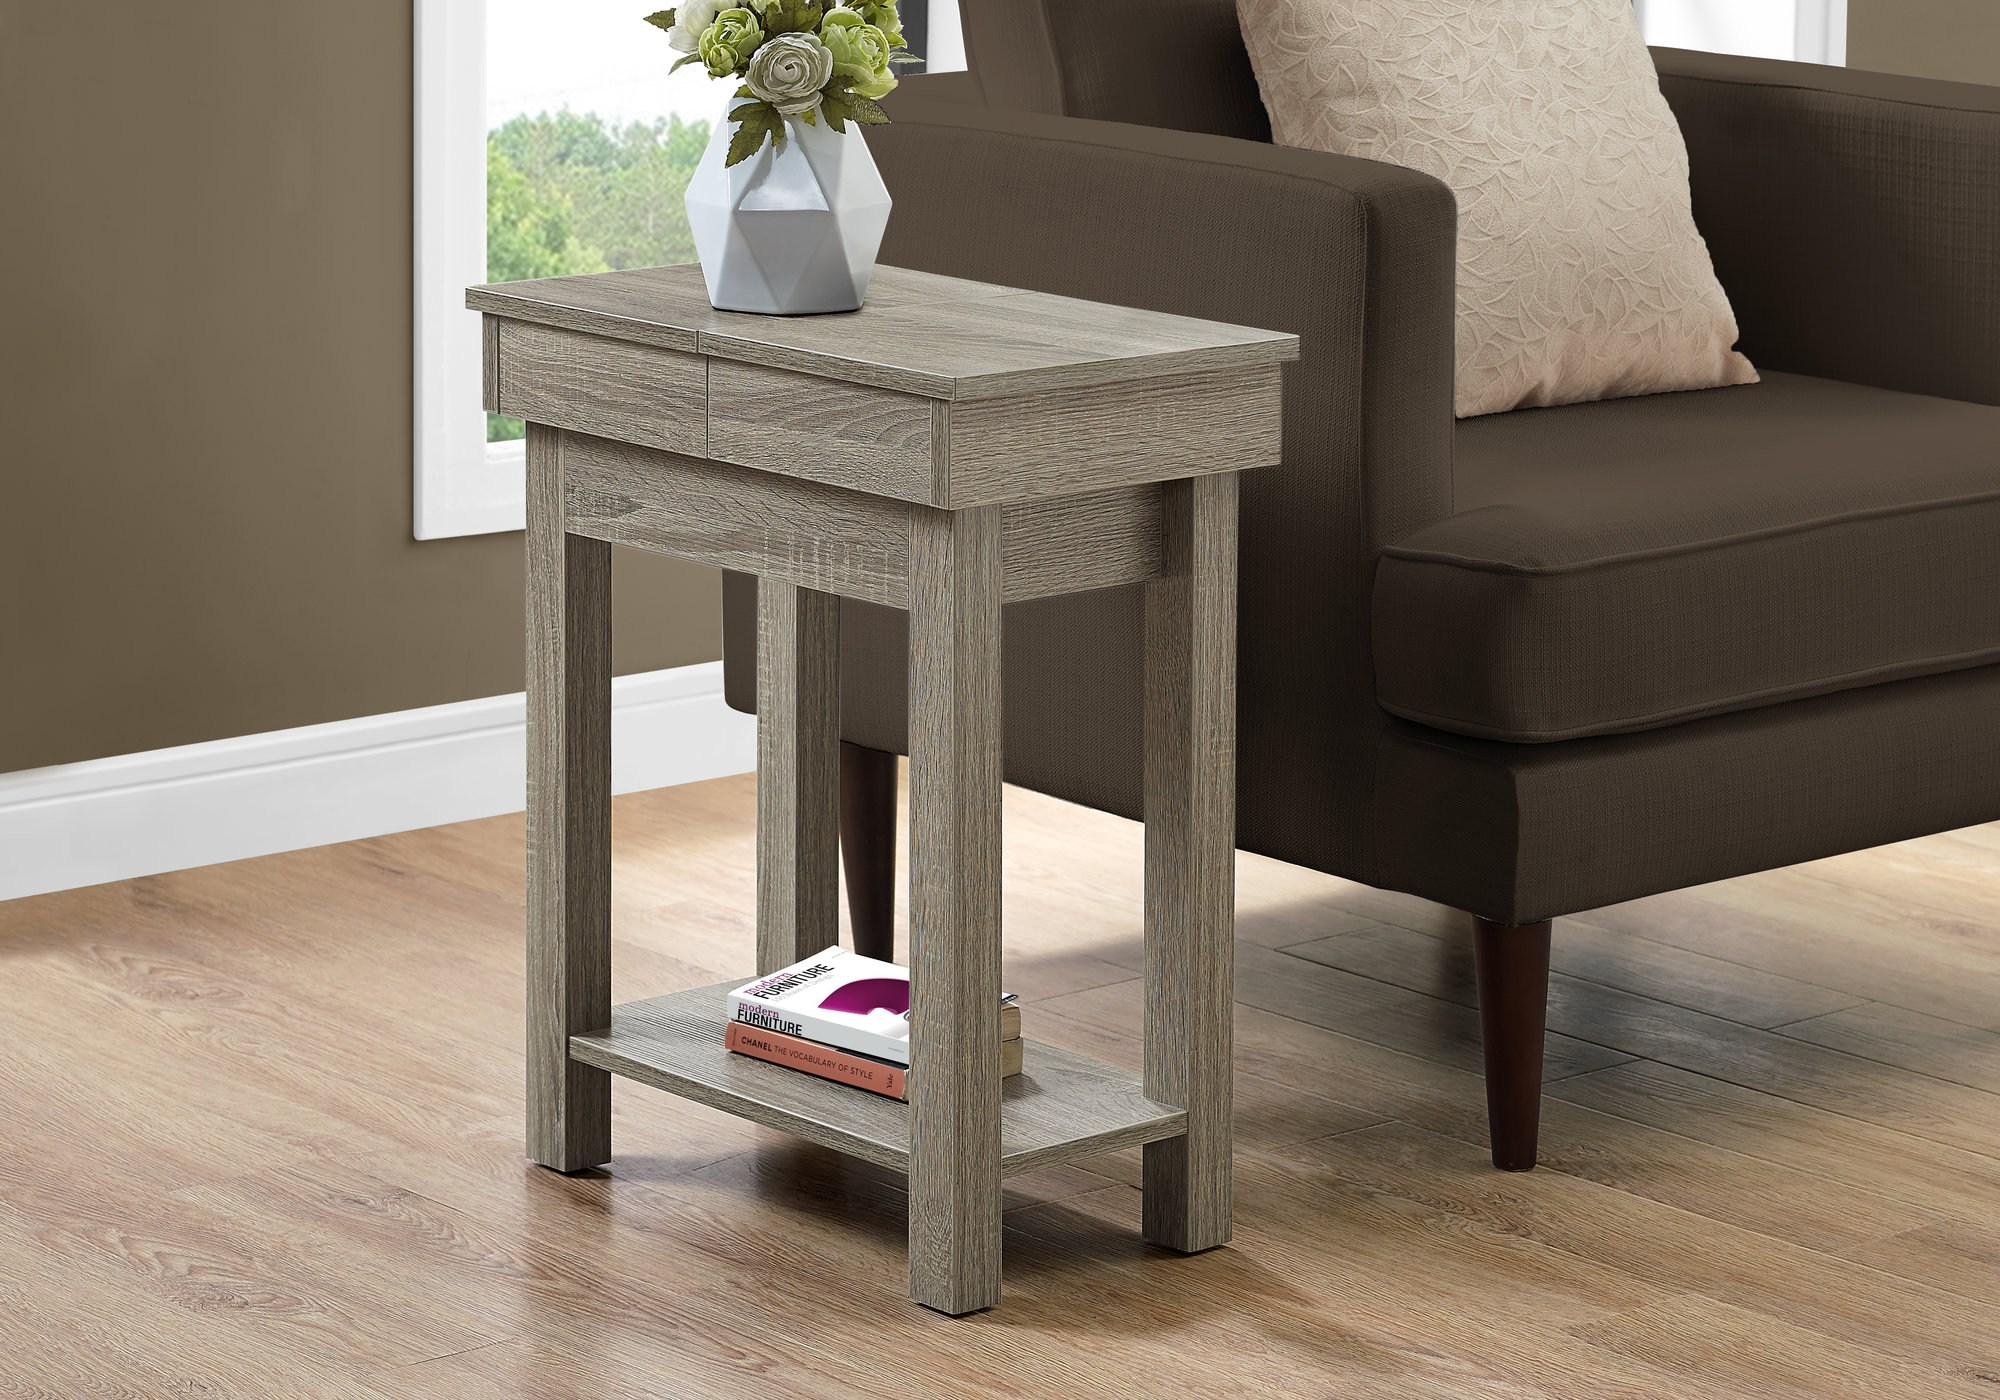 solway taupe accent table tables light wood behind couch target kindle fire dinette sets comfy patio furniture marble coffee metal floor threshold antique drop leaf dining bath